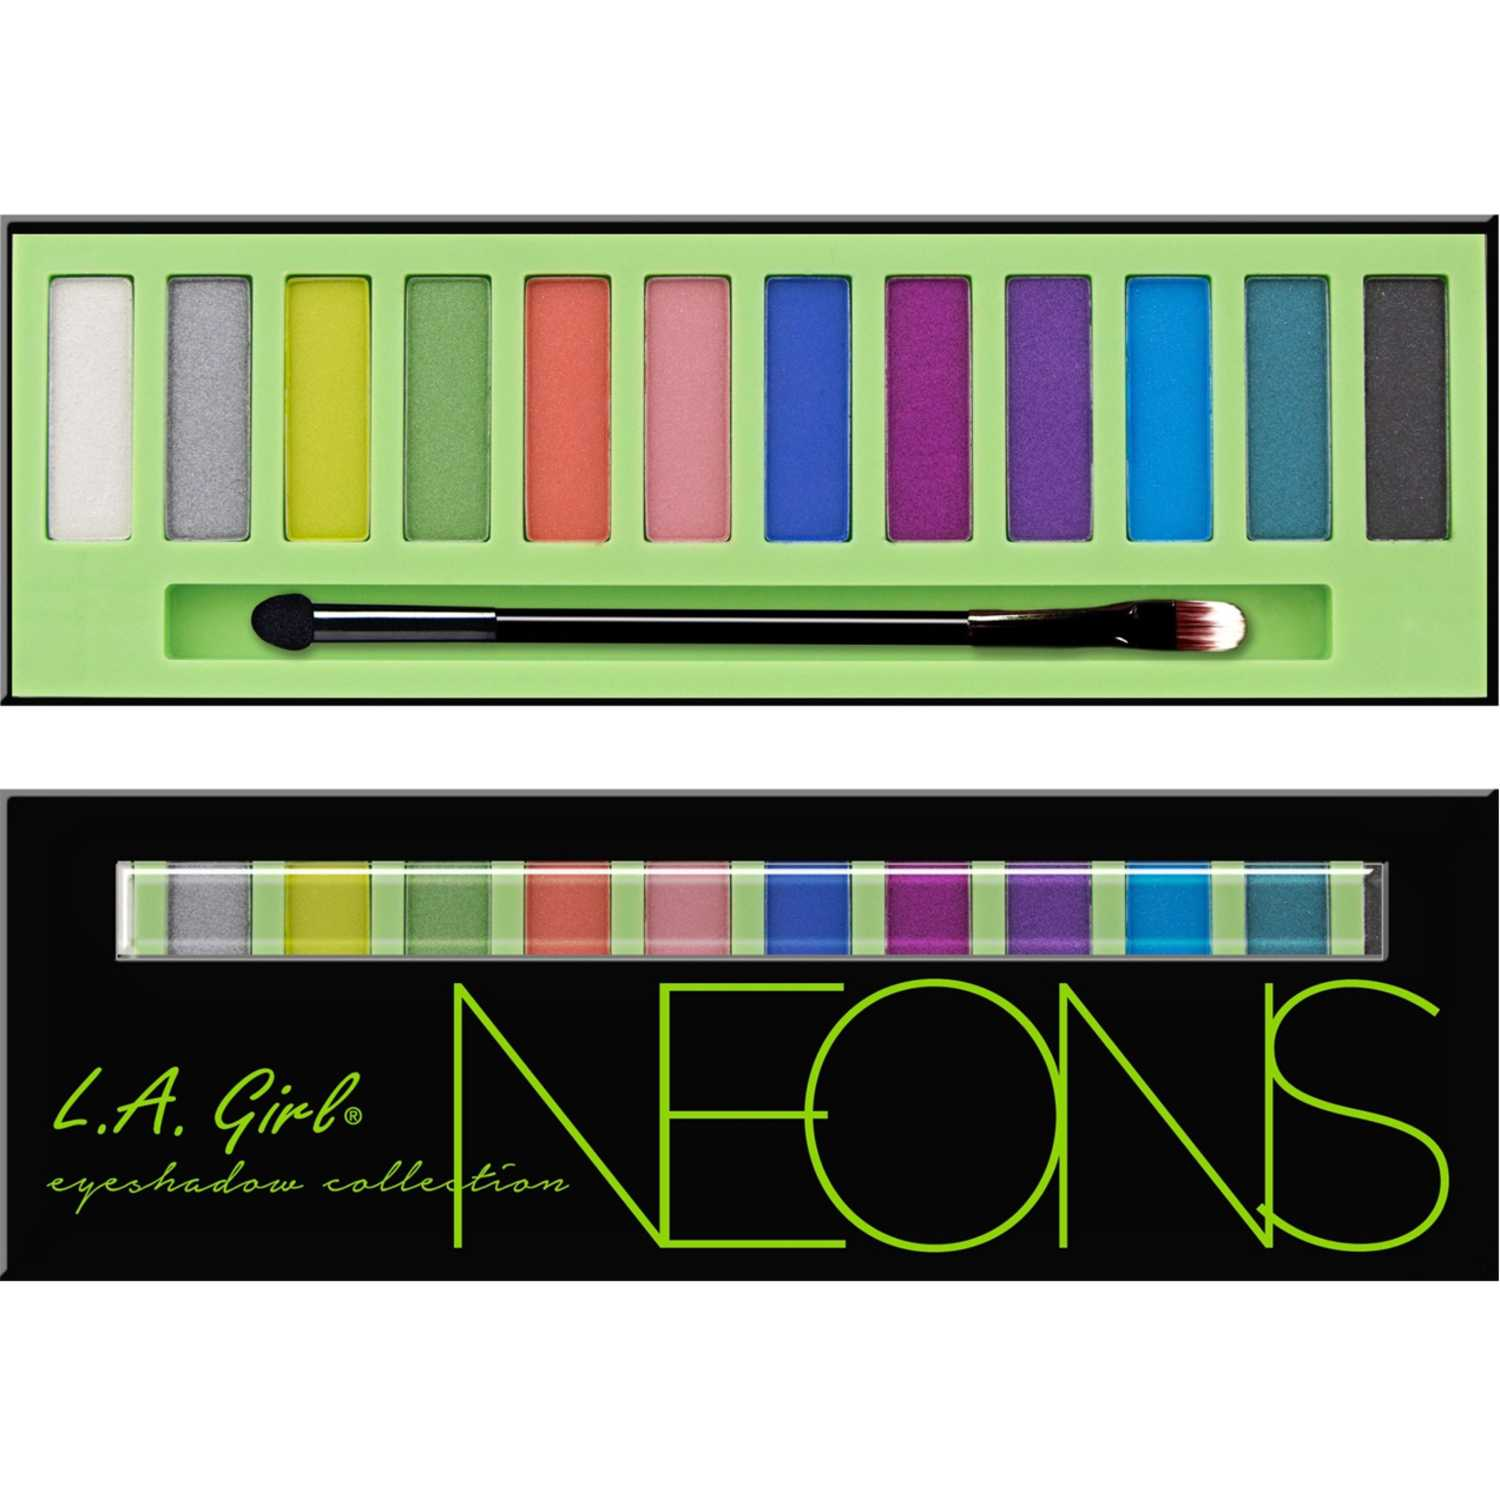 L.a. Girl beauty brick eyeshadow collection Neon Sombra